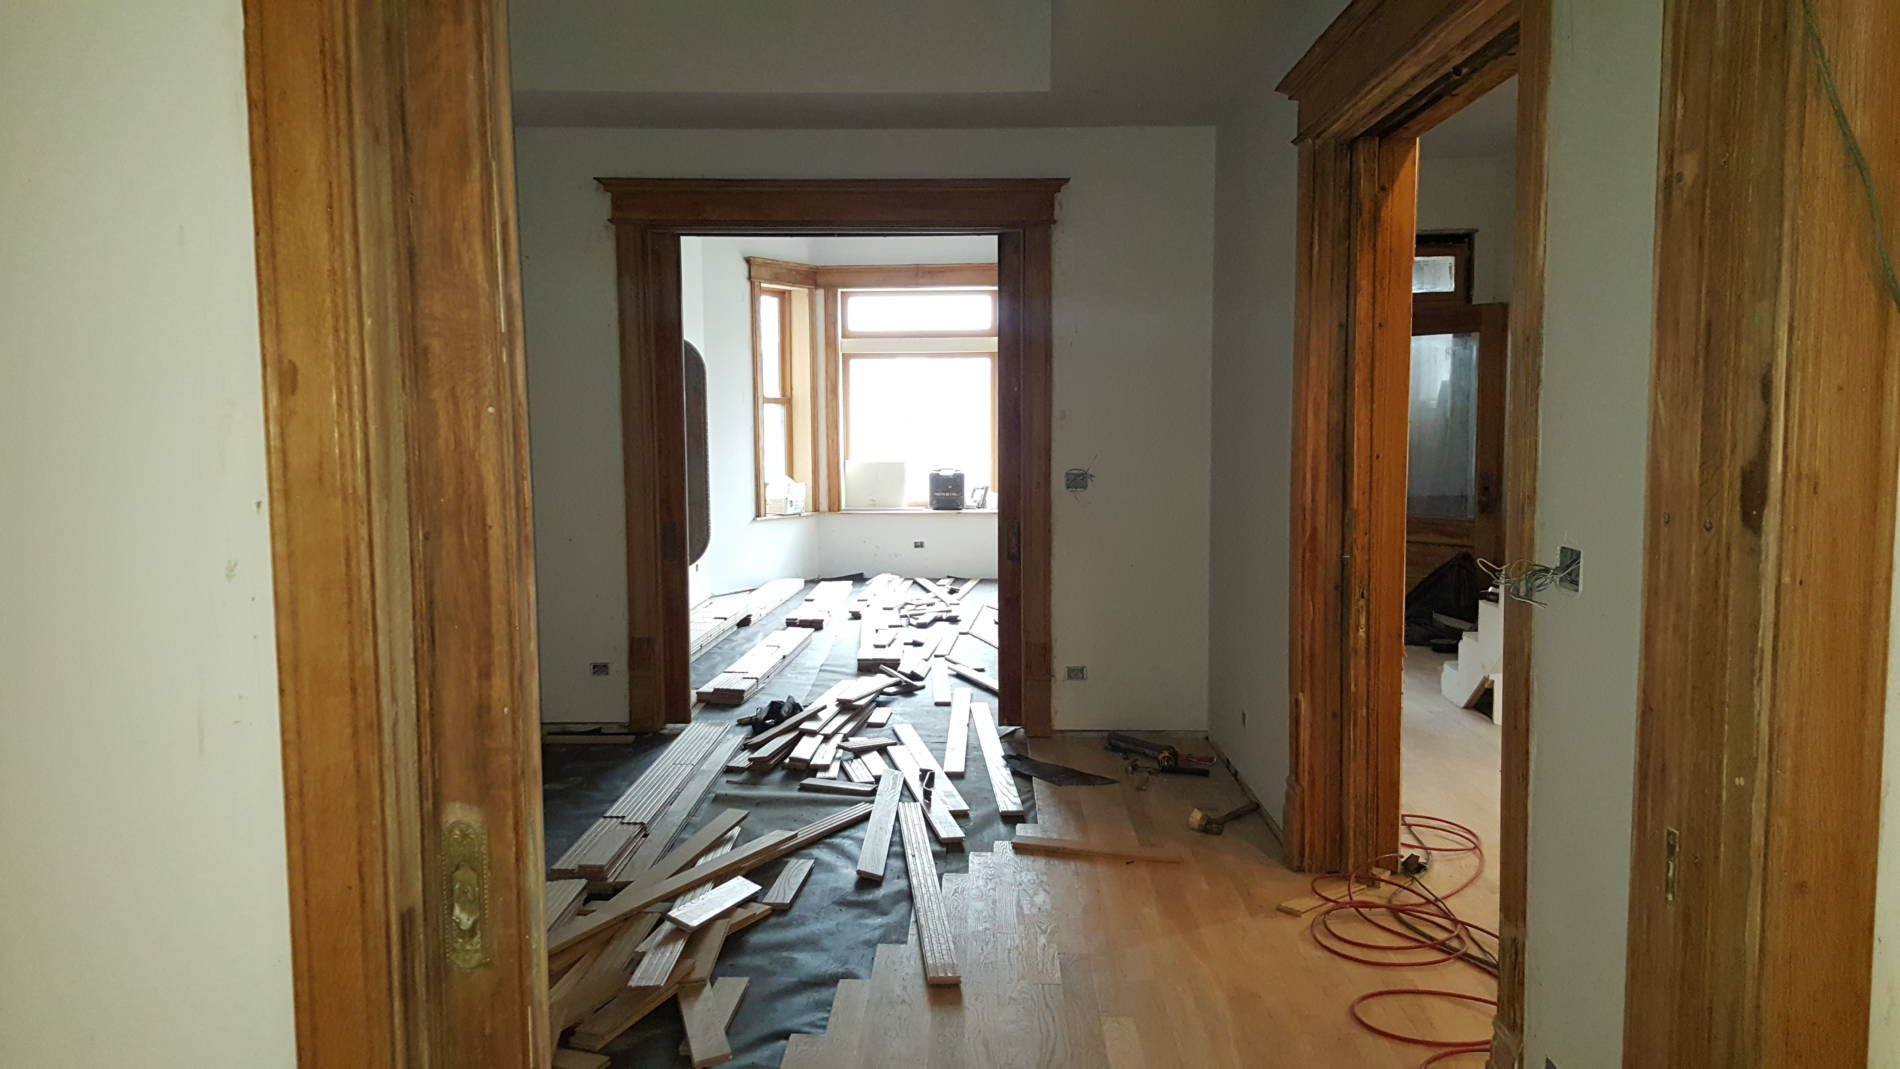 1-20-17 822 E 42nd St Trim Stain